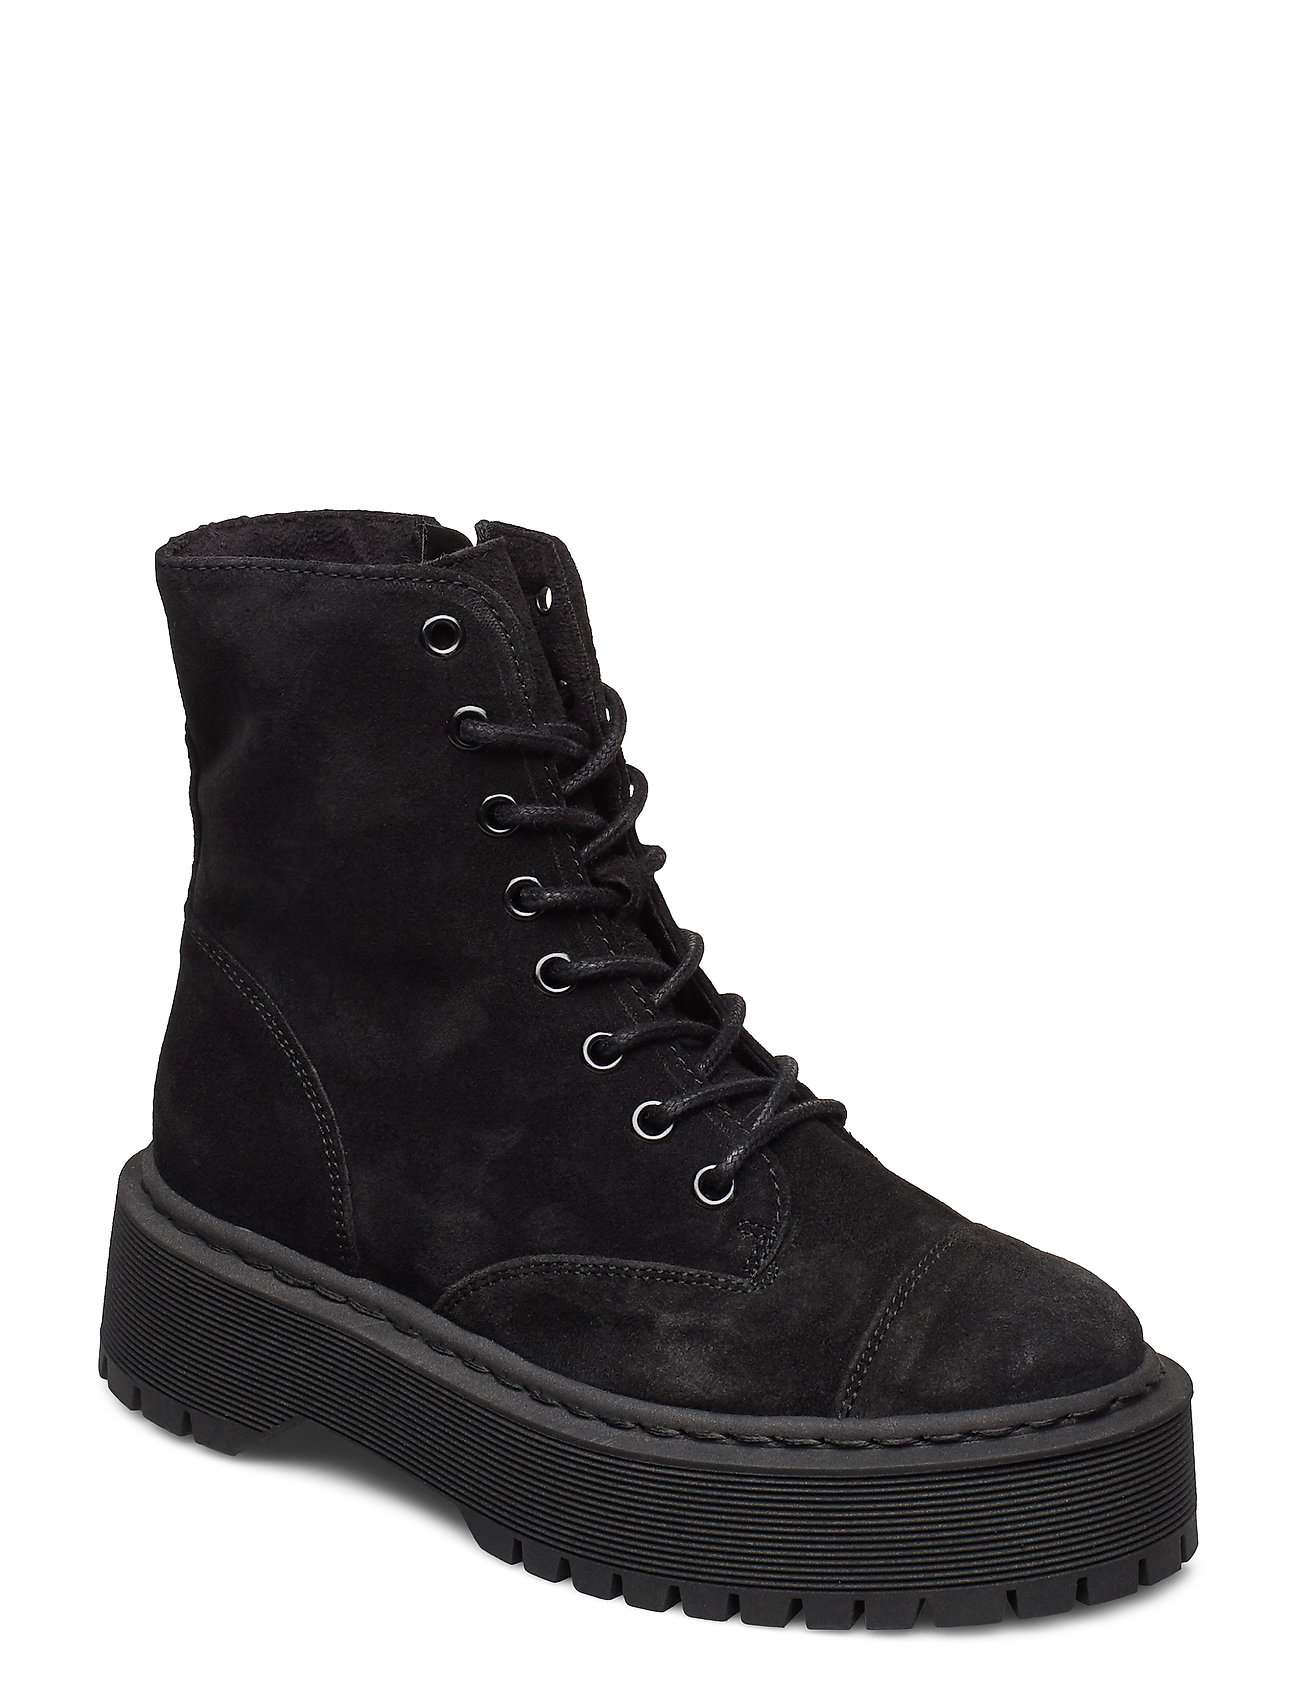 Image of Vmpath Leather Boot Shoes Boots Ankle Boots Ankle Boot - Flat Sort Vero Moda (3422268239)